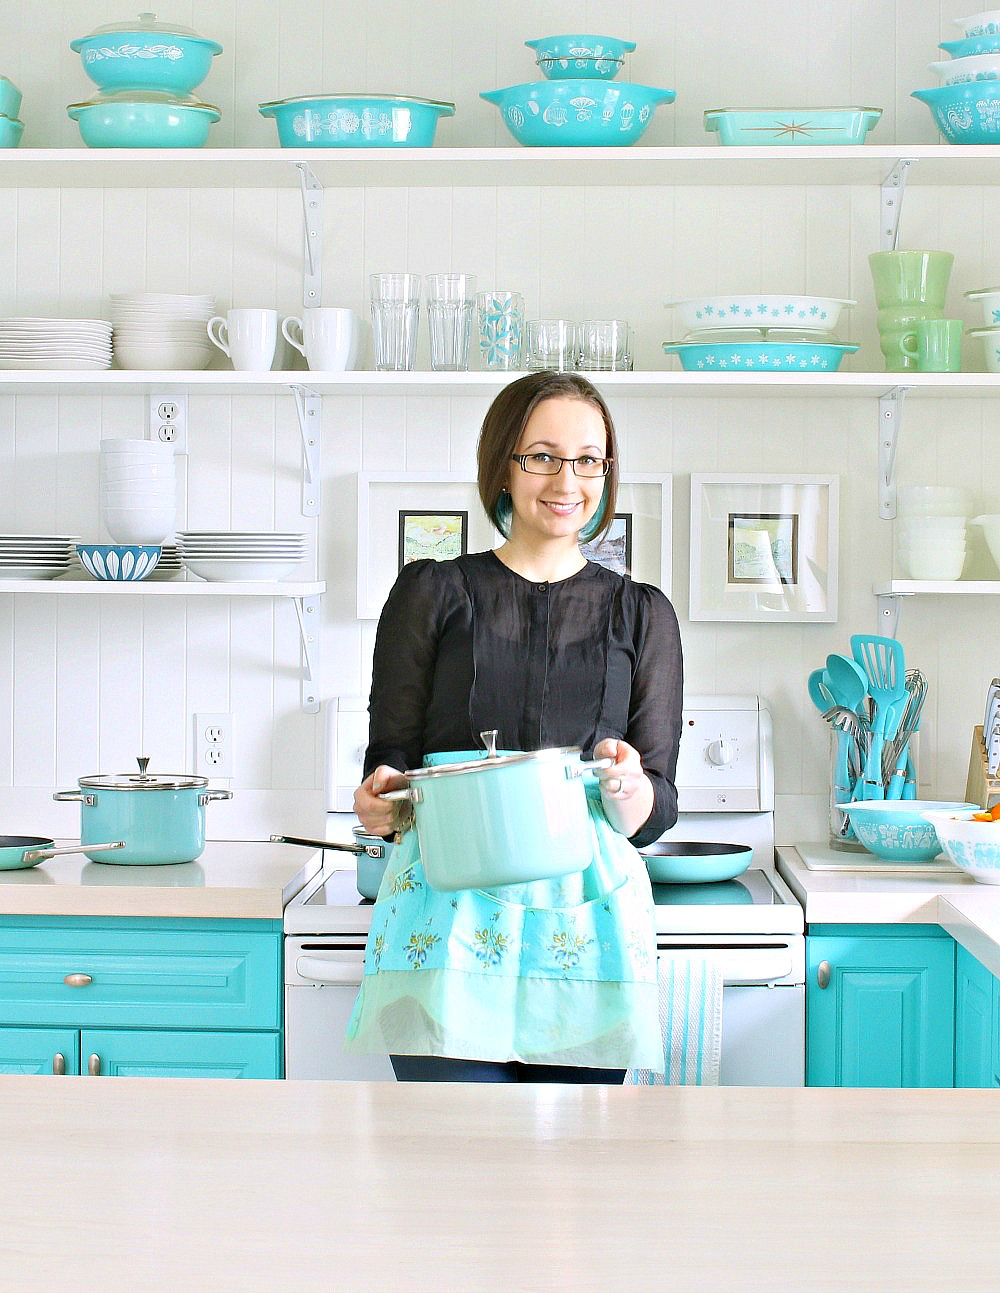 Kitchen to Match Turquoise Pyrex